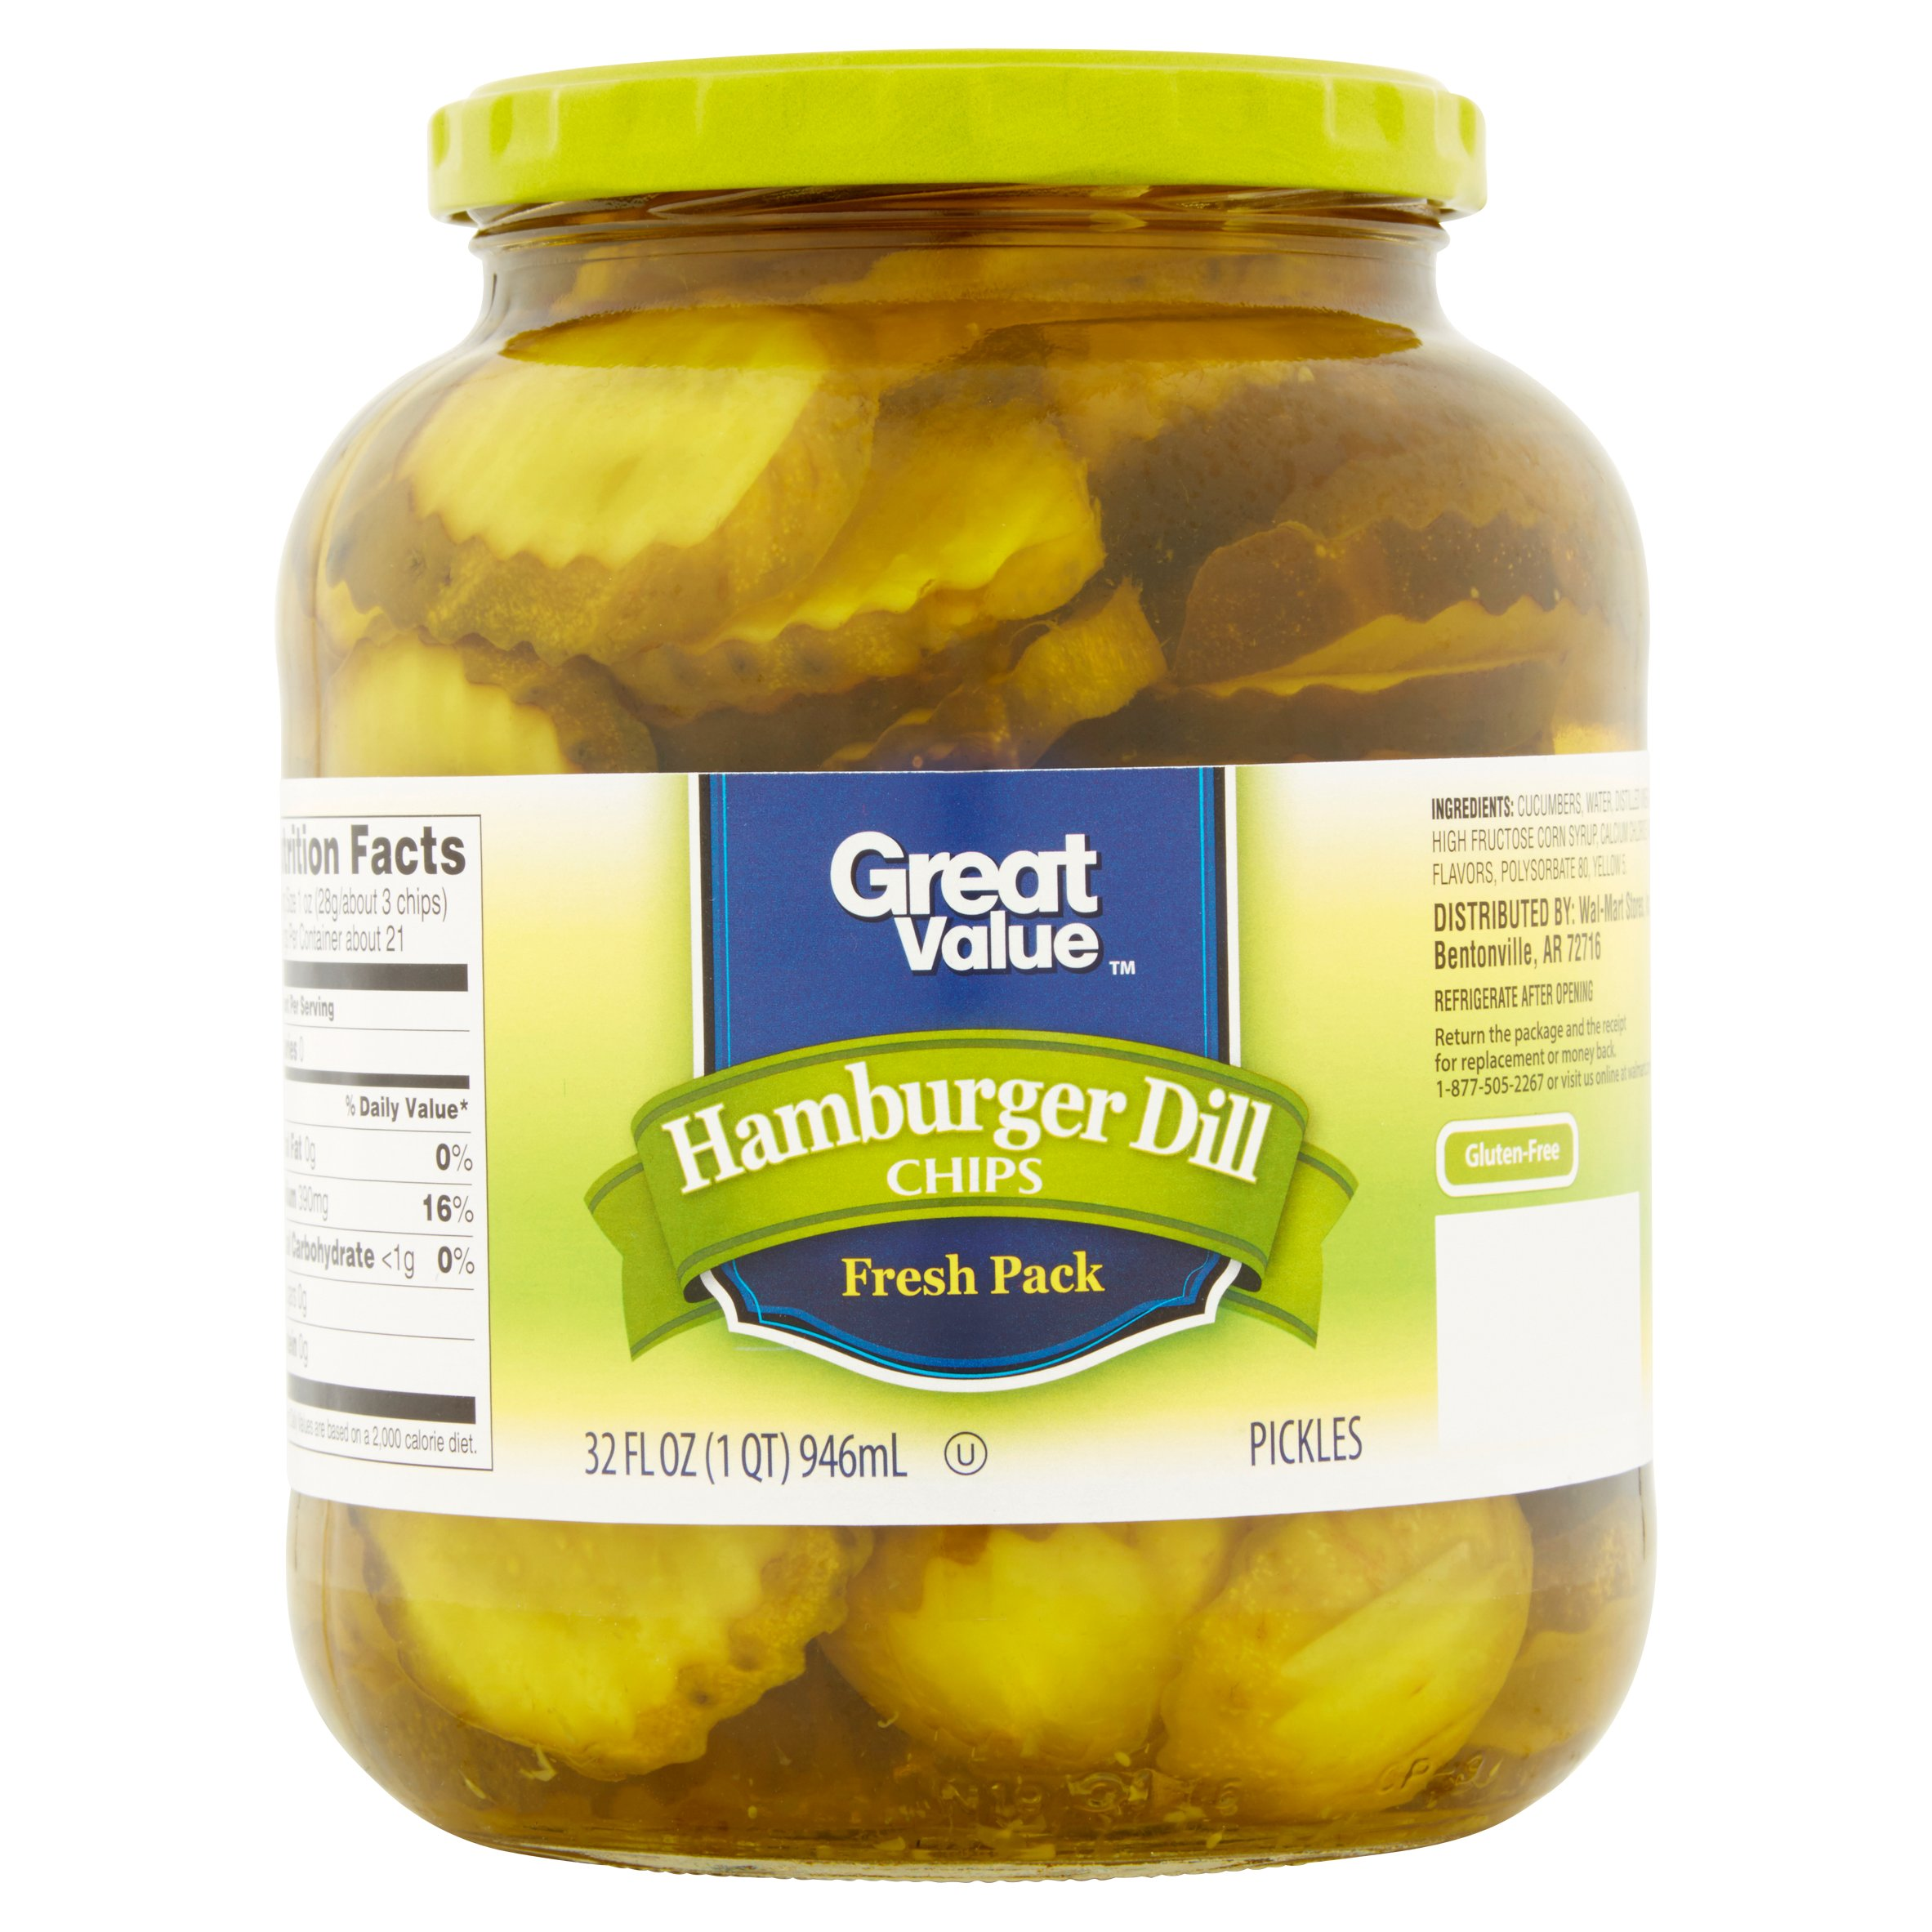 Great Value Hamburger Dill Chips Pickles, 32 fl oz by Wal-Mart Stores, Inc.